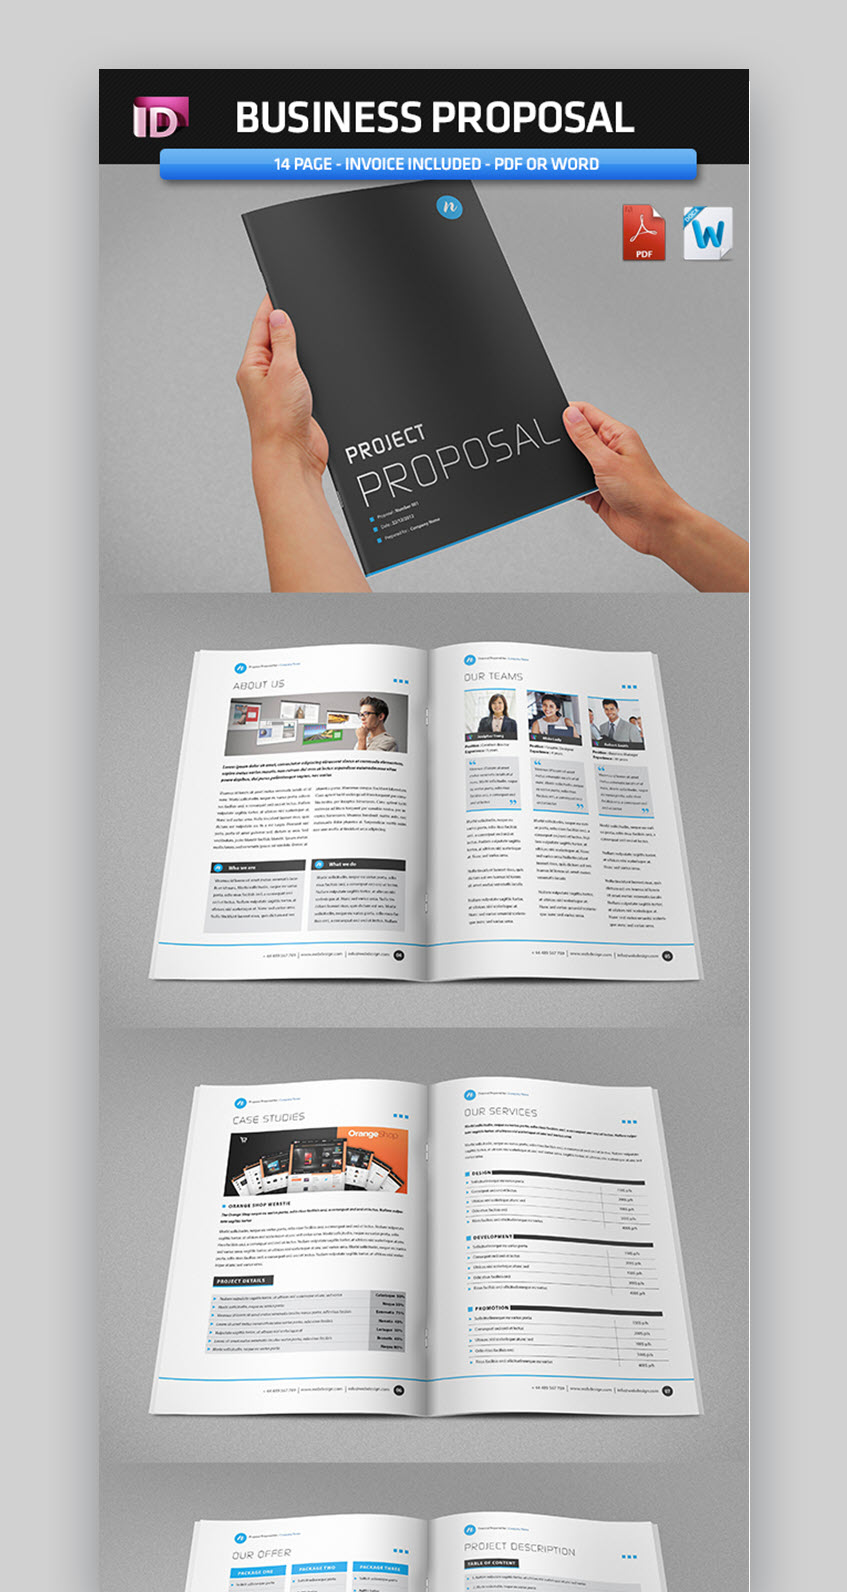 how to create a proposal template in word%0A ngo funding proposal template proposal for funding template Picture Ideas  References